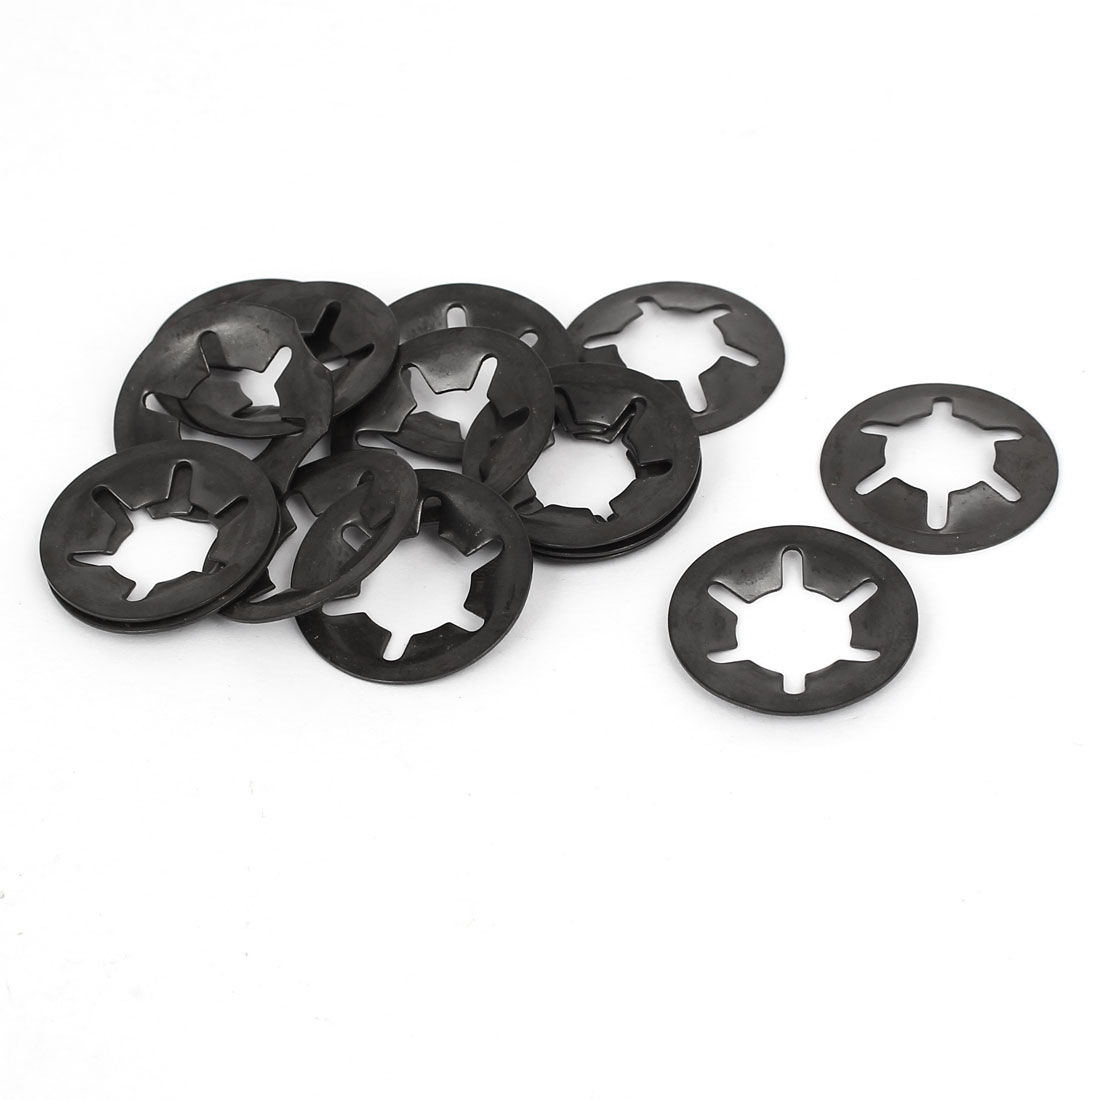 12mm x 25mm Internal Tooth Quicklock Speed Lock Starlock Washers 15PCS